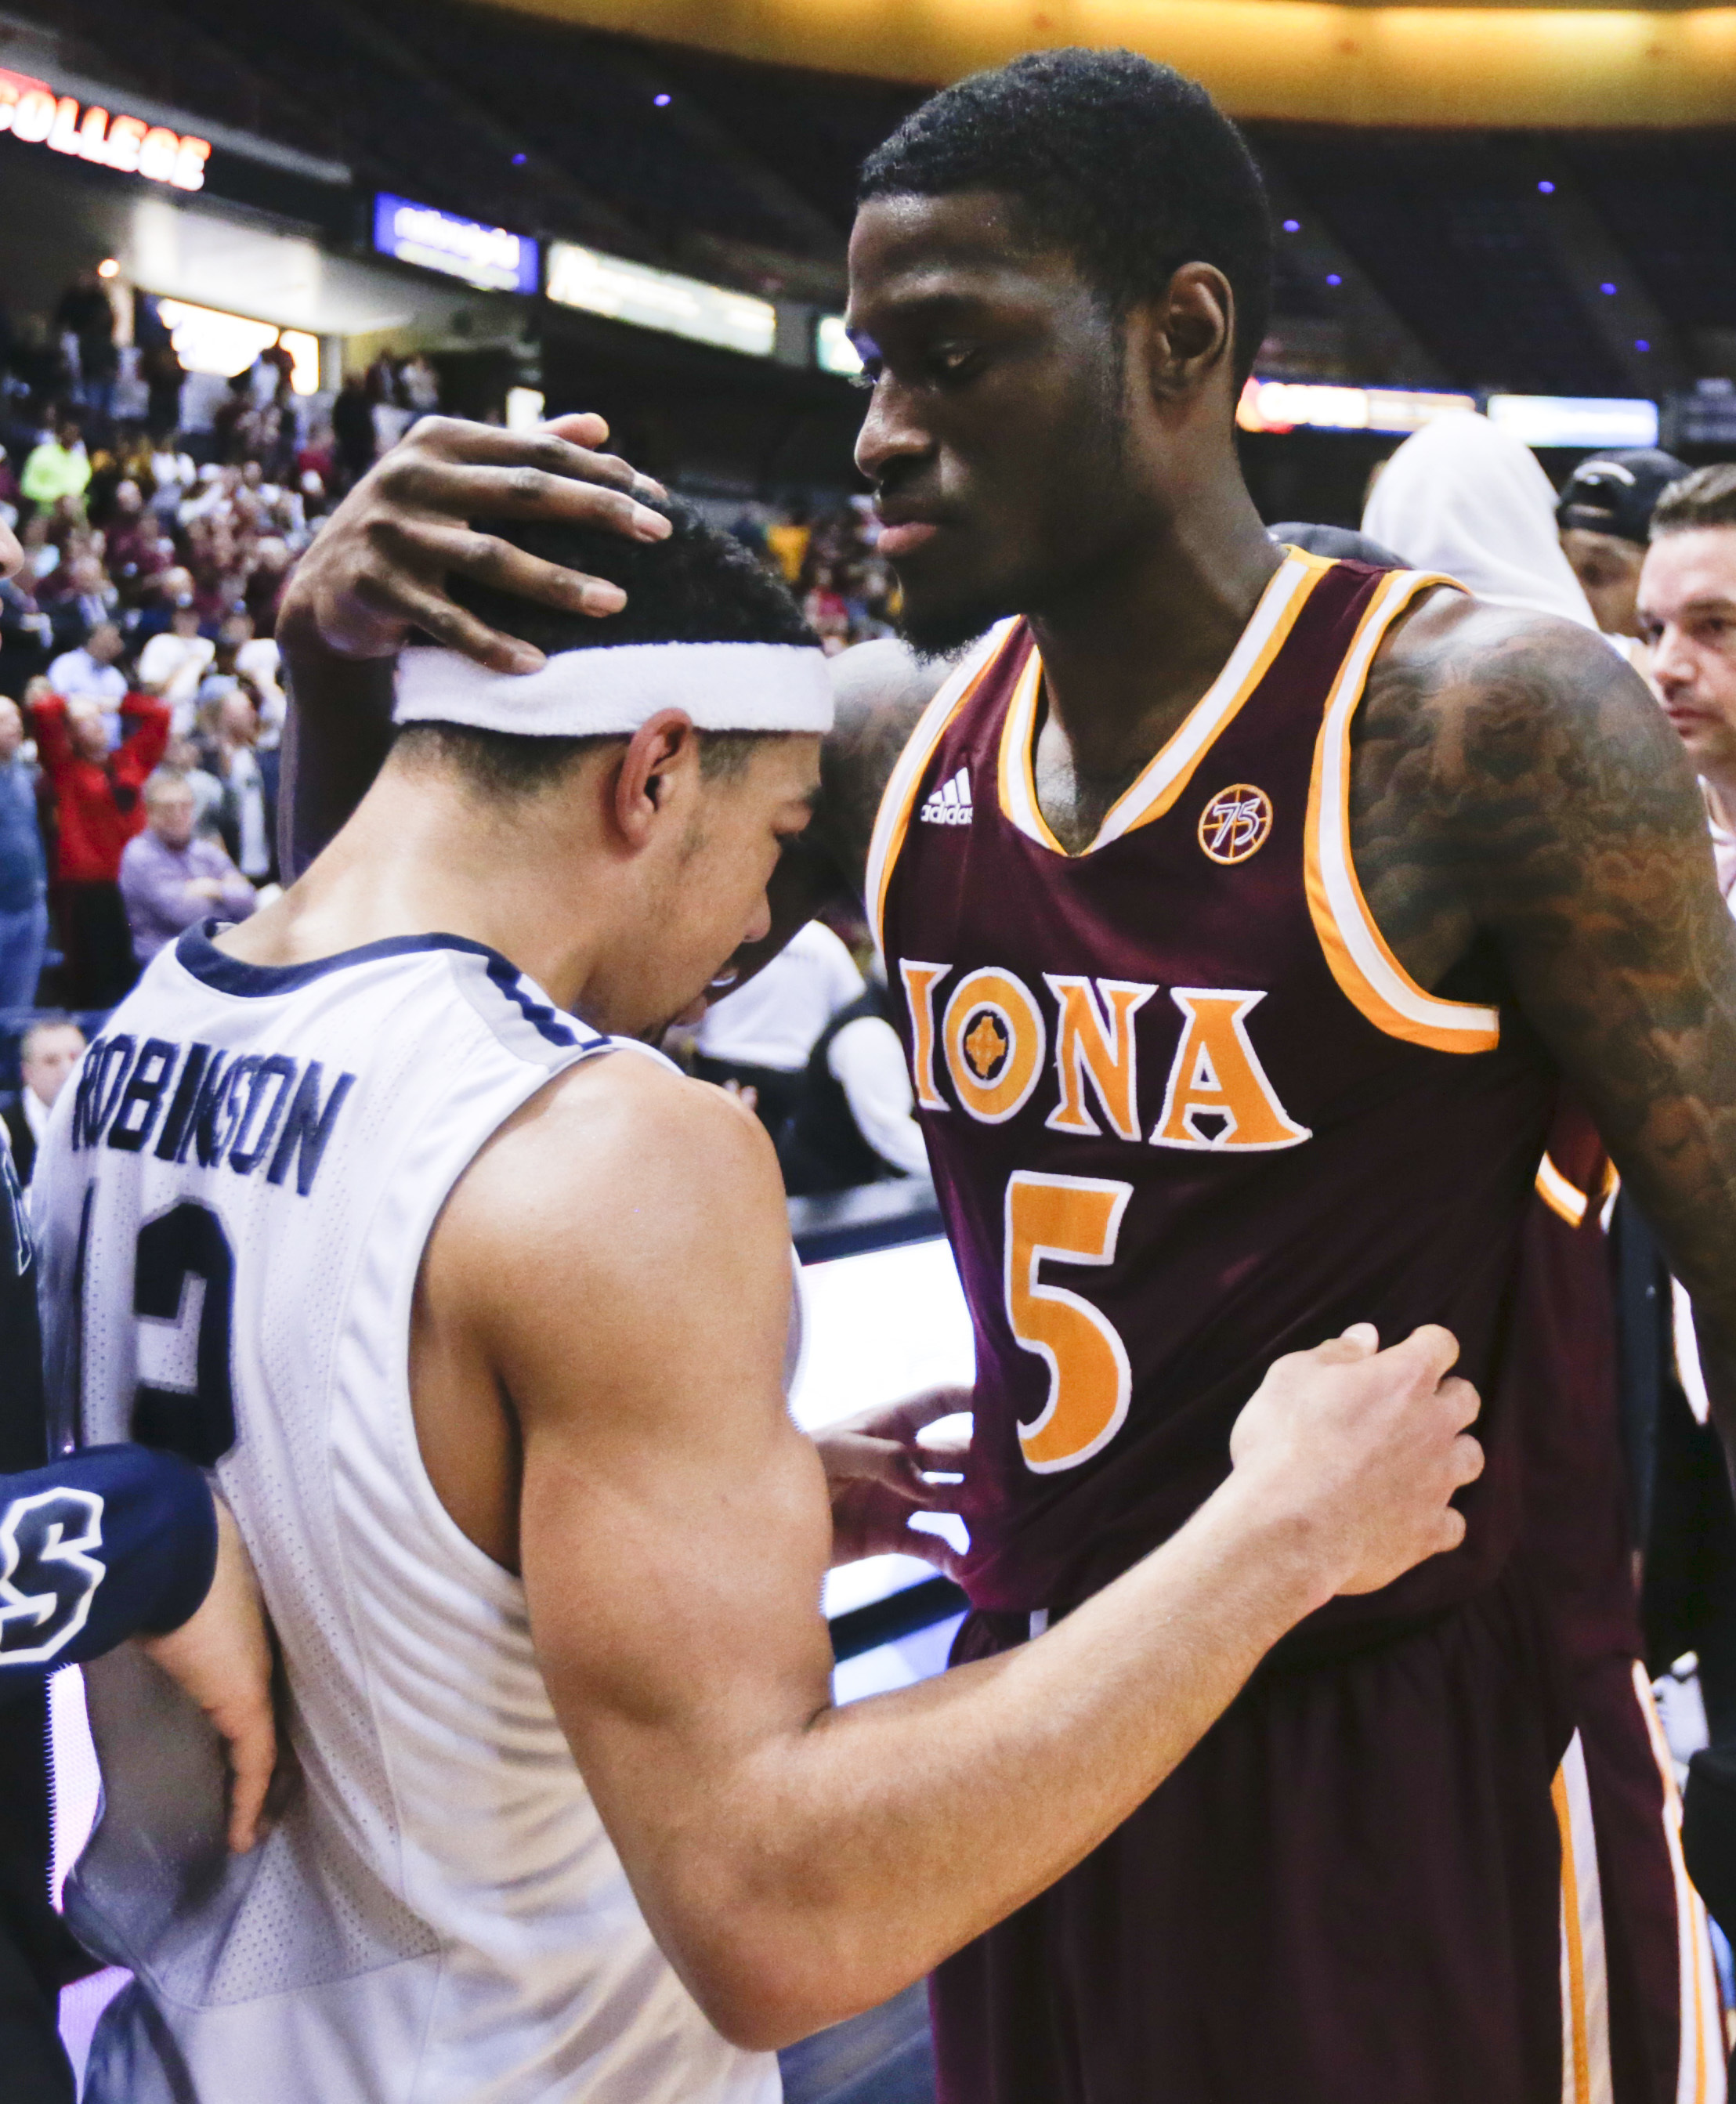 Iona guard A.J. English (5) embraces Monmouth guard Justin Robinson (12) after Iona's 79-76 win in an NCAA men's college basketball game in the championship of the Metro Atlantic Athletic Conference tournament on Monday, March 7, 2016, in Albany, N.Y. (AP